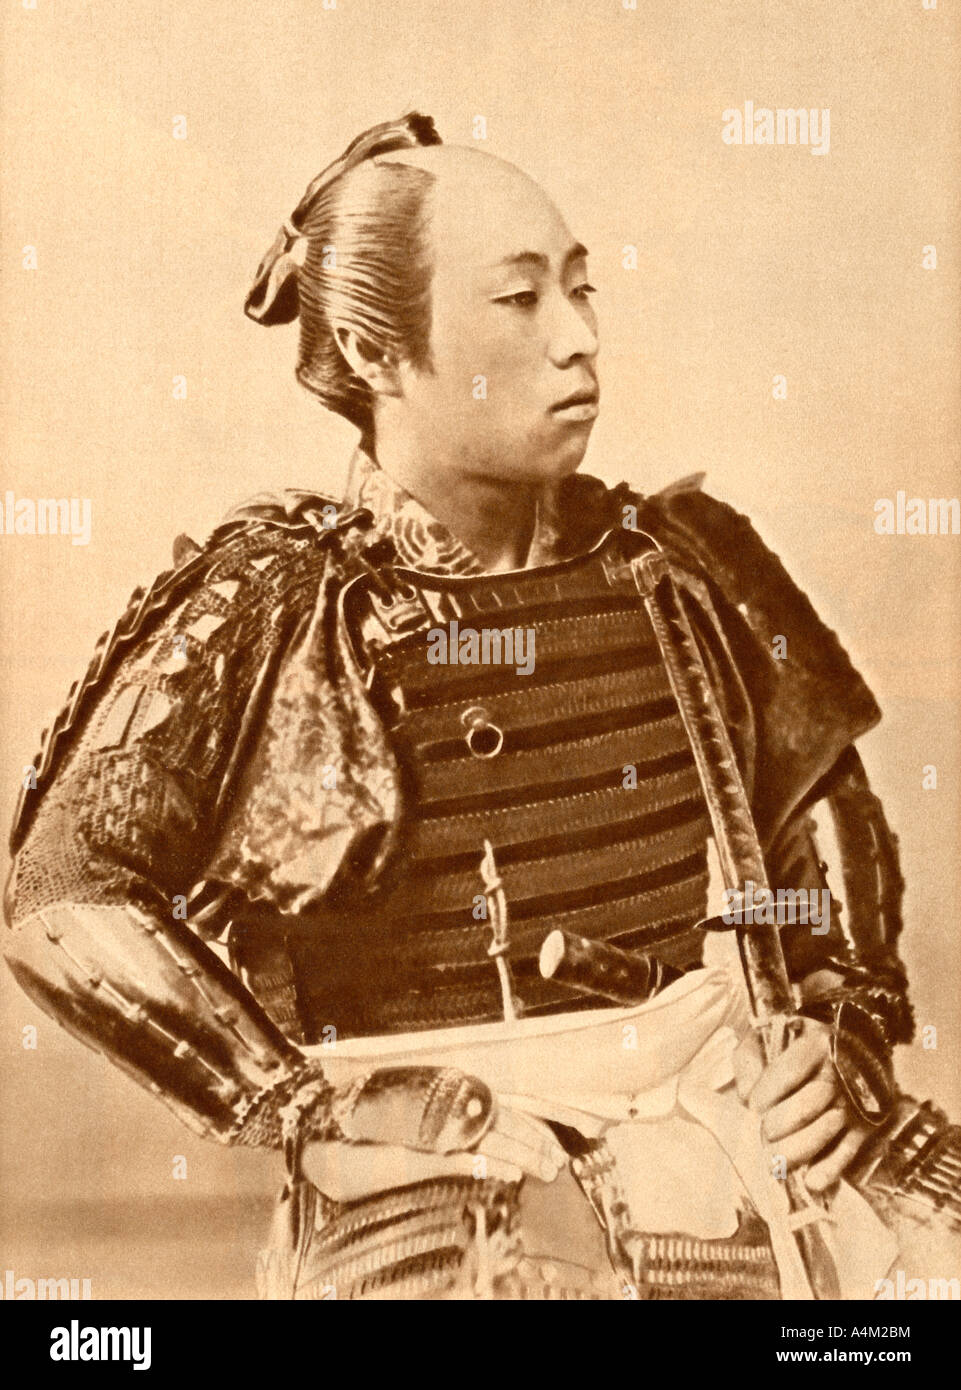 Historical Photograph of a Japanese Samurai Warrior in Traditional Dress - Stock Image